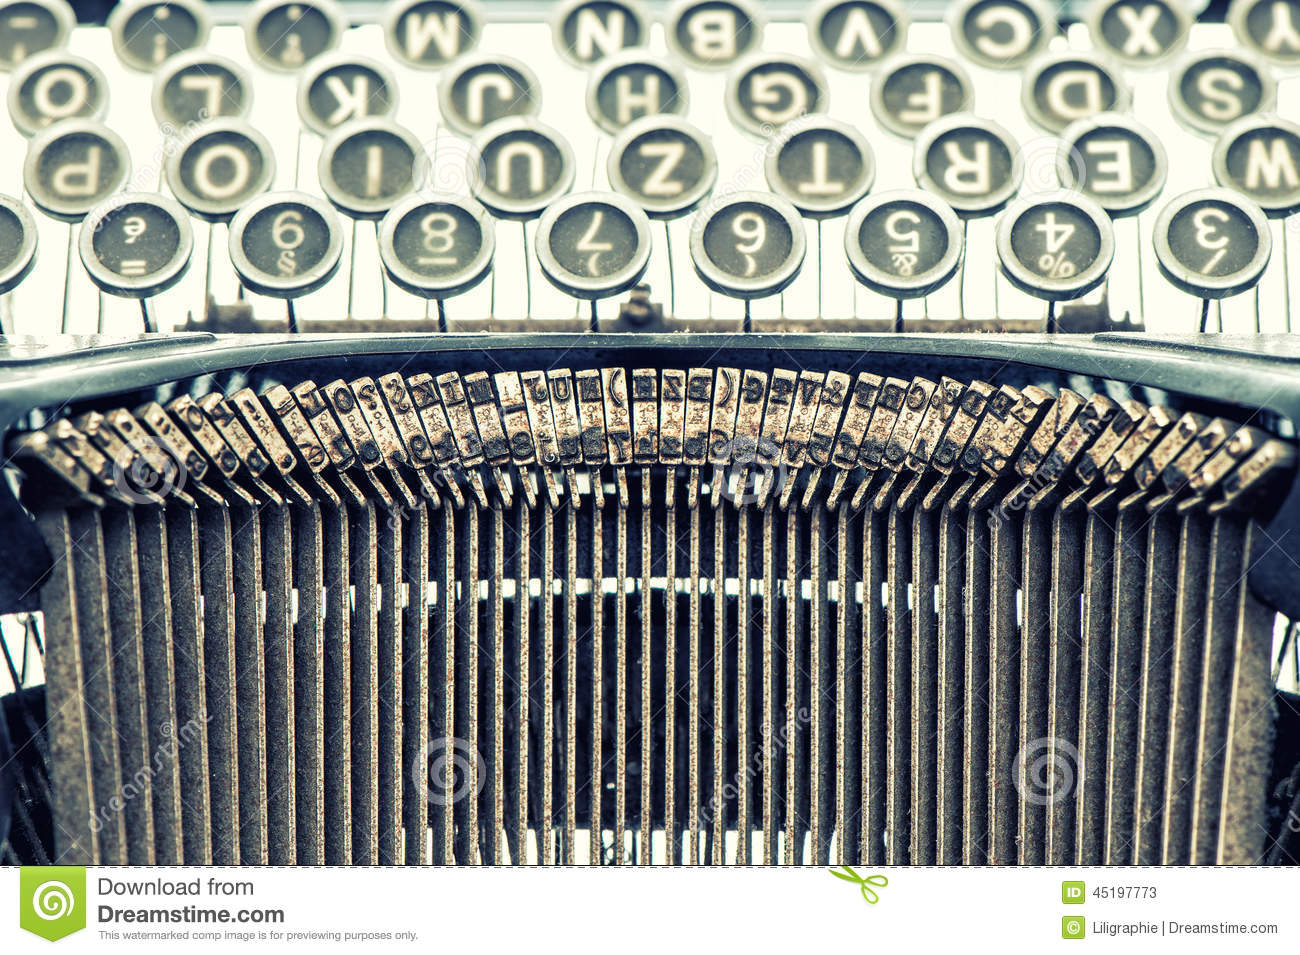 antique typewriter vintage object retro style picture stock photo image 45197773. Black Bedroom Furniture Sets. Home Design Ideas